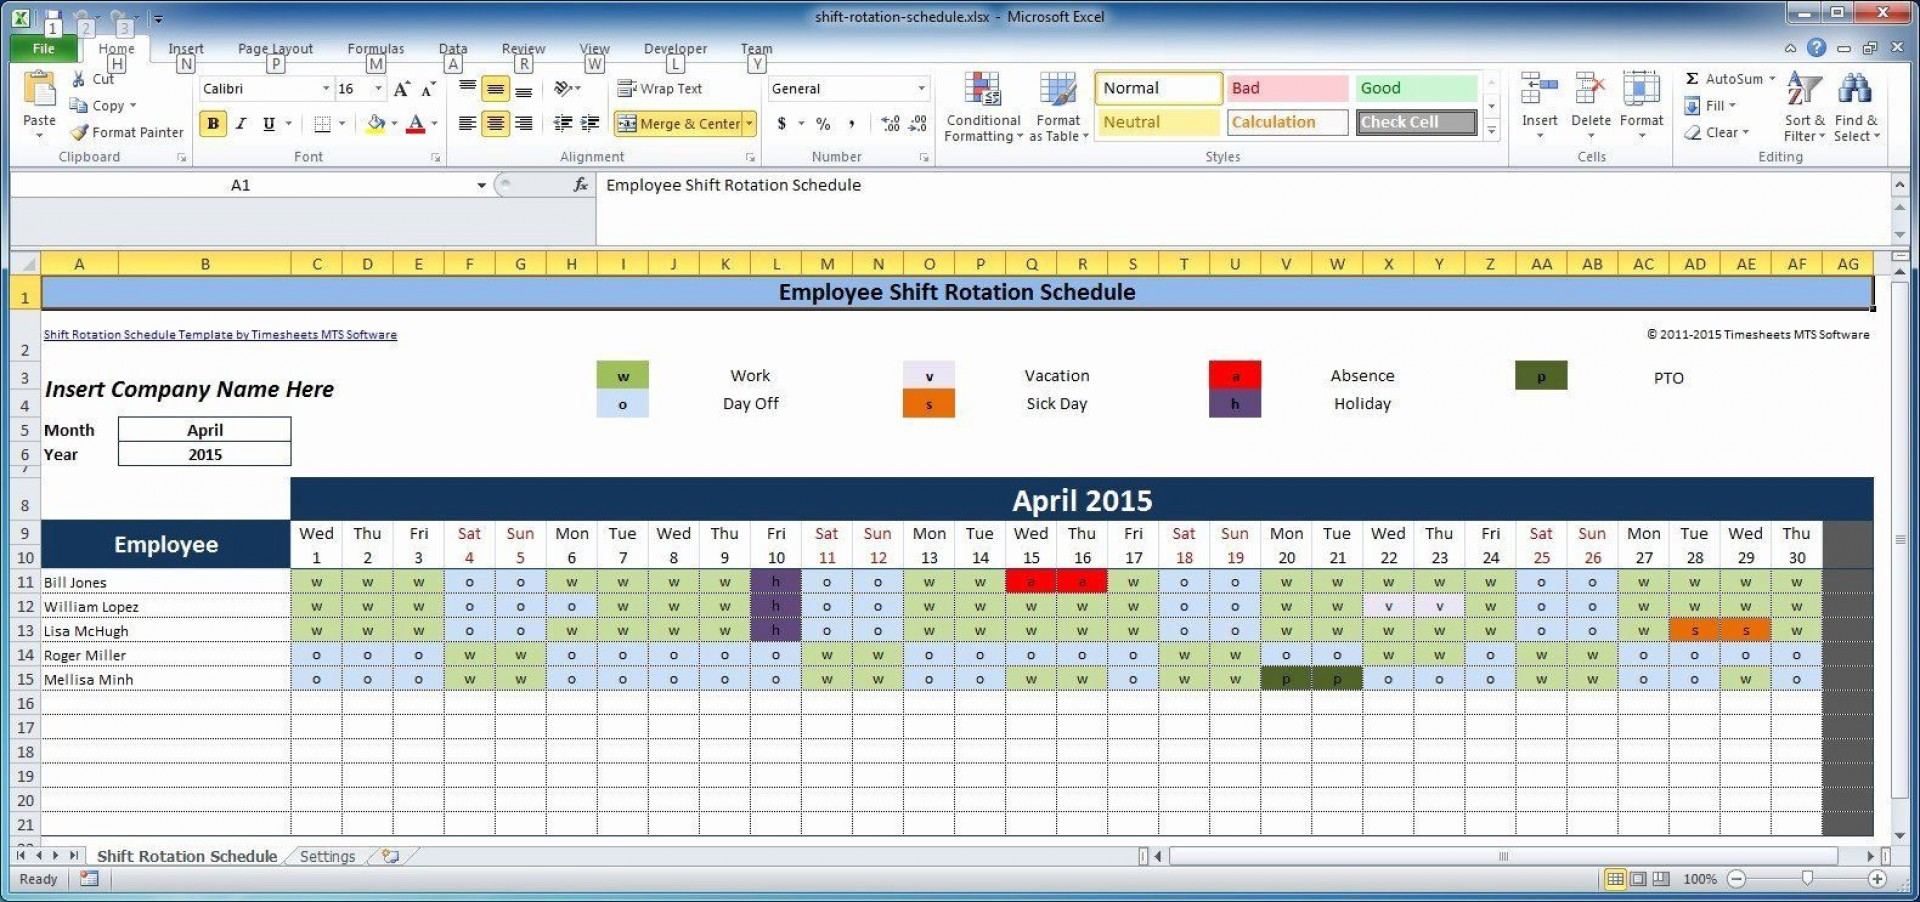 008 Shocking Excel Work Schedule Template Concept  Microsoft Plan Yearly Shift1920